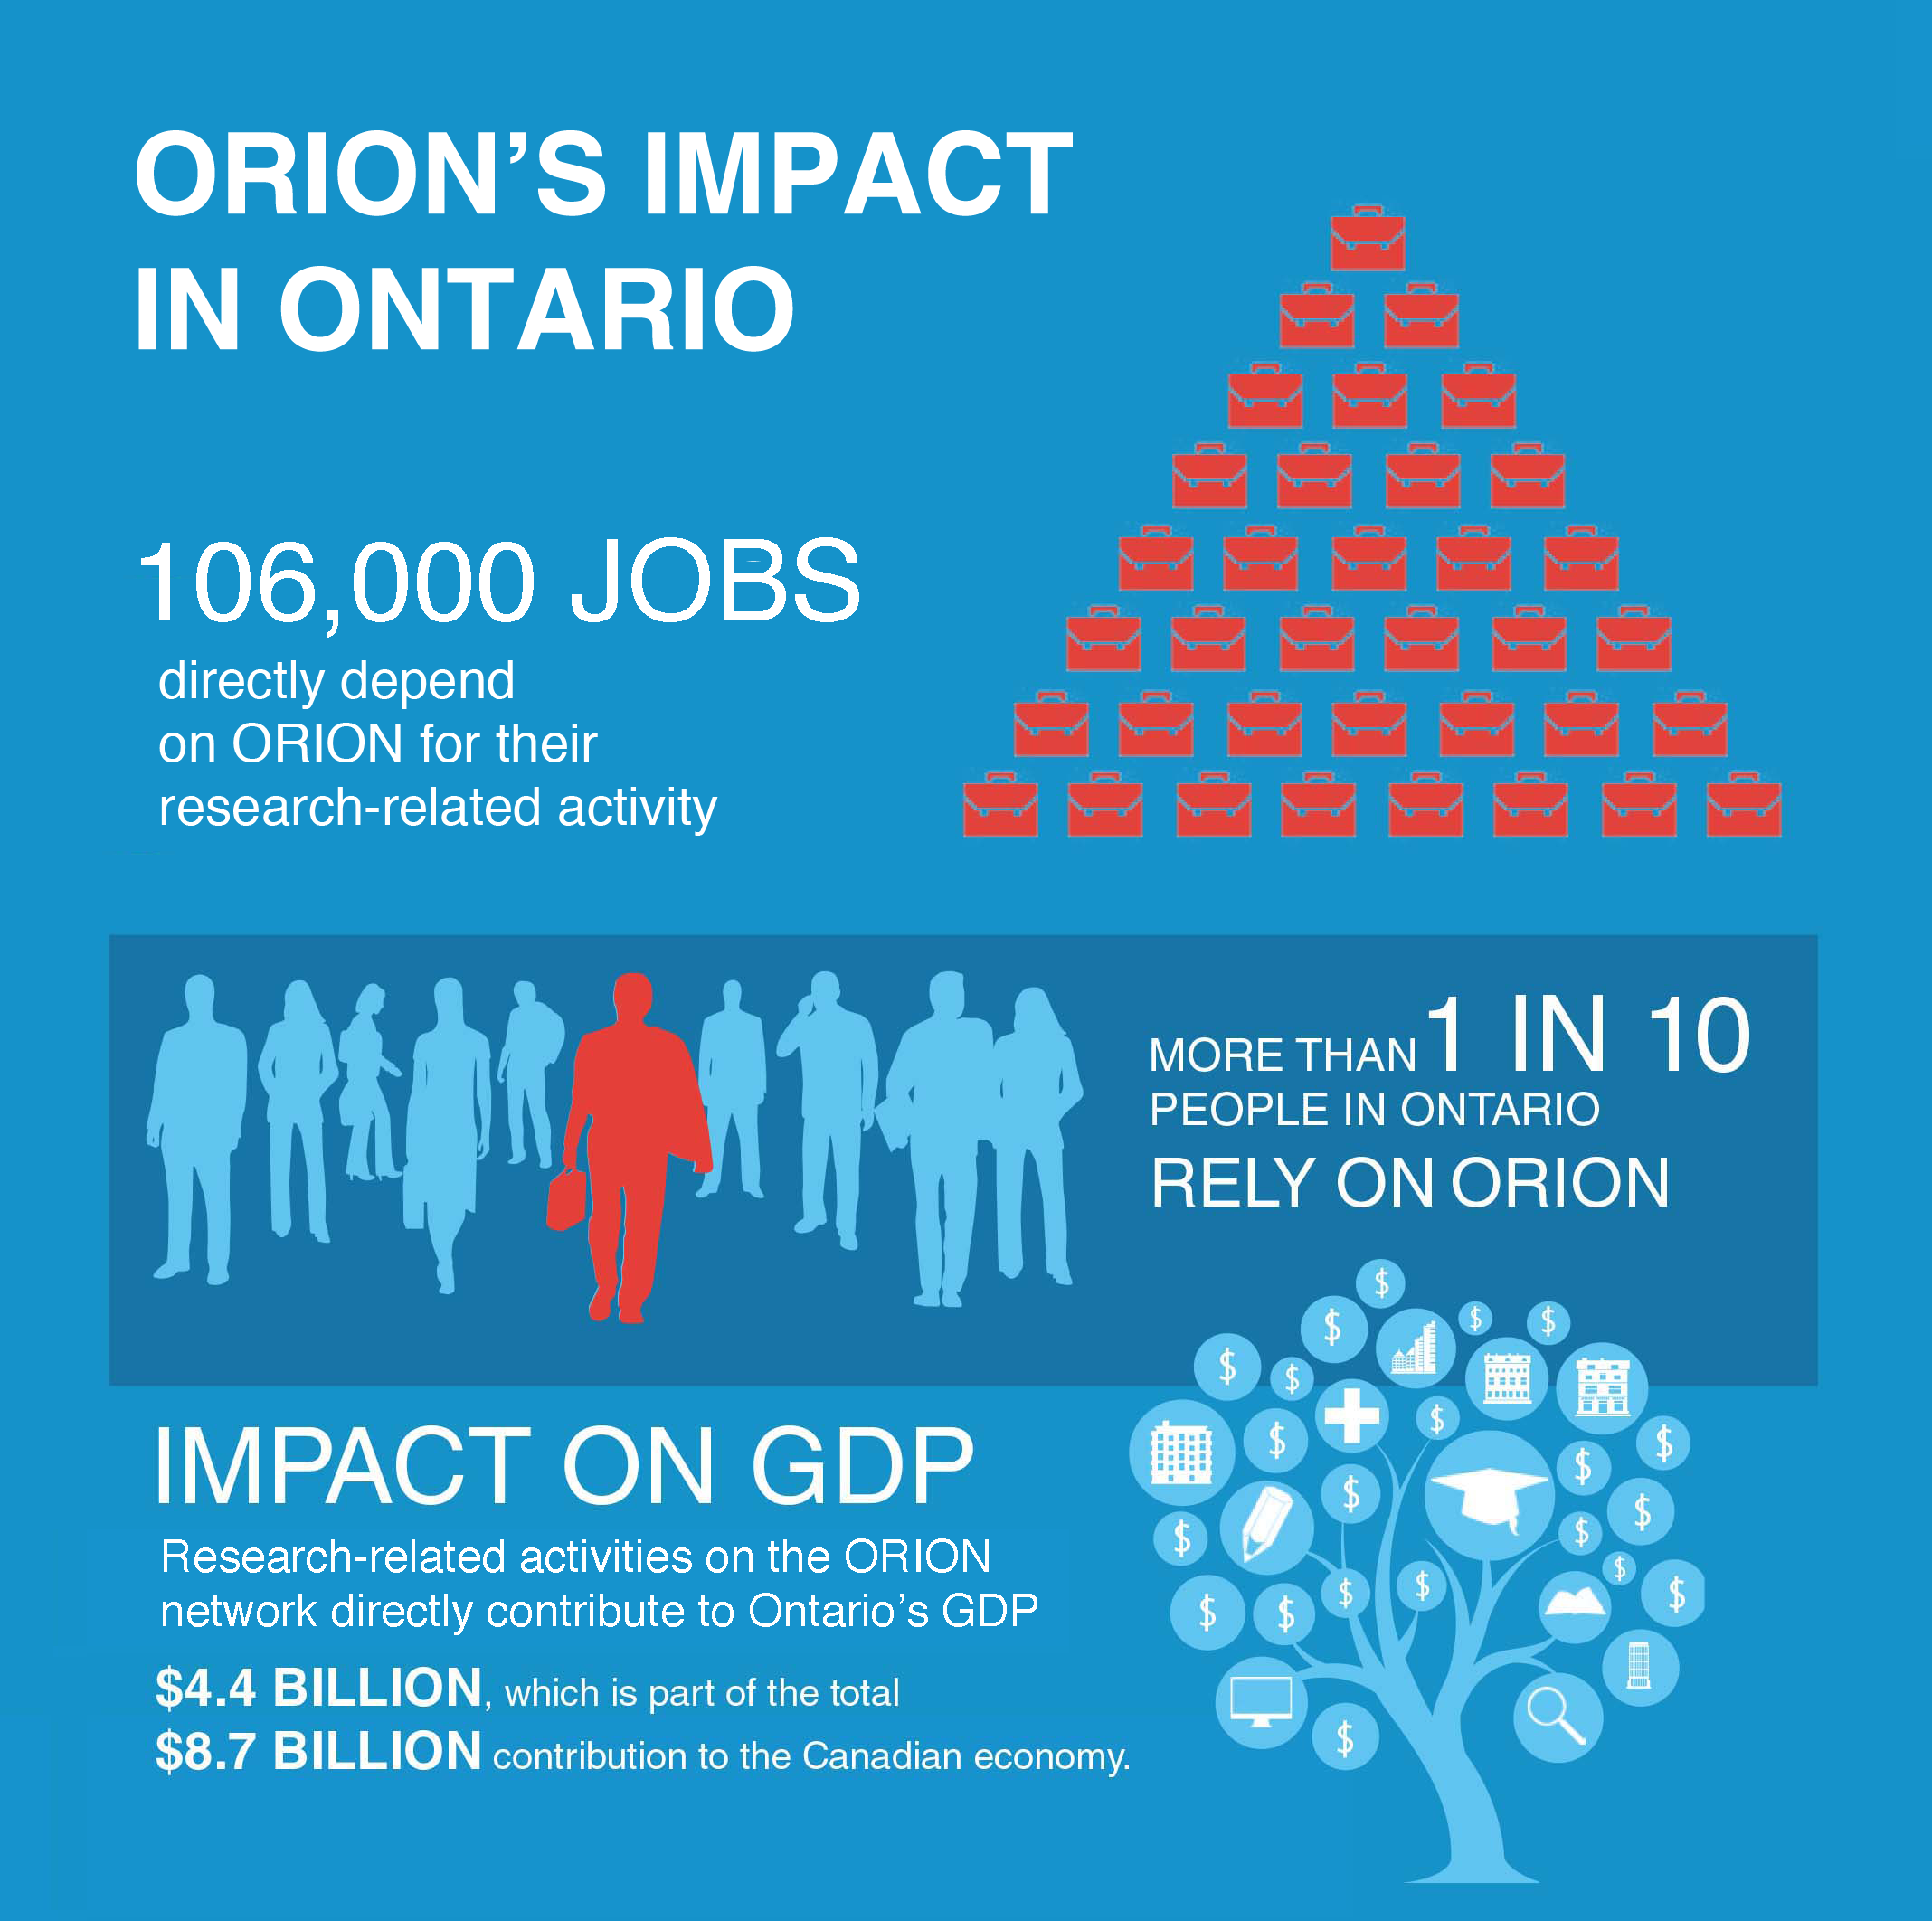 ORION's socio-economic impact on Ontario